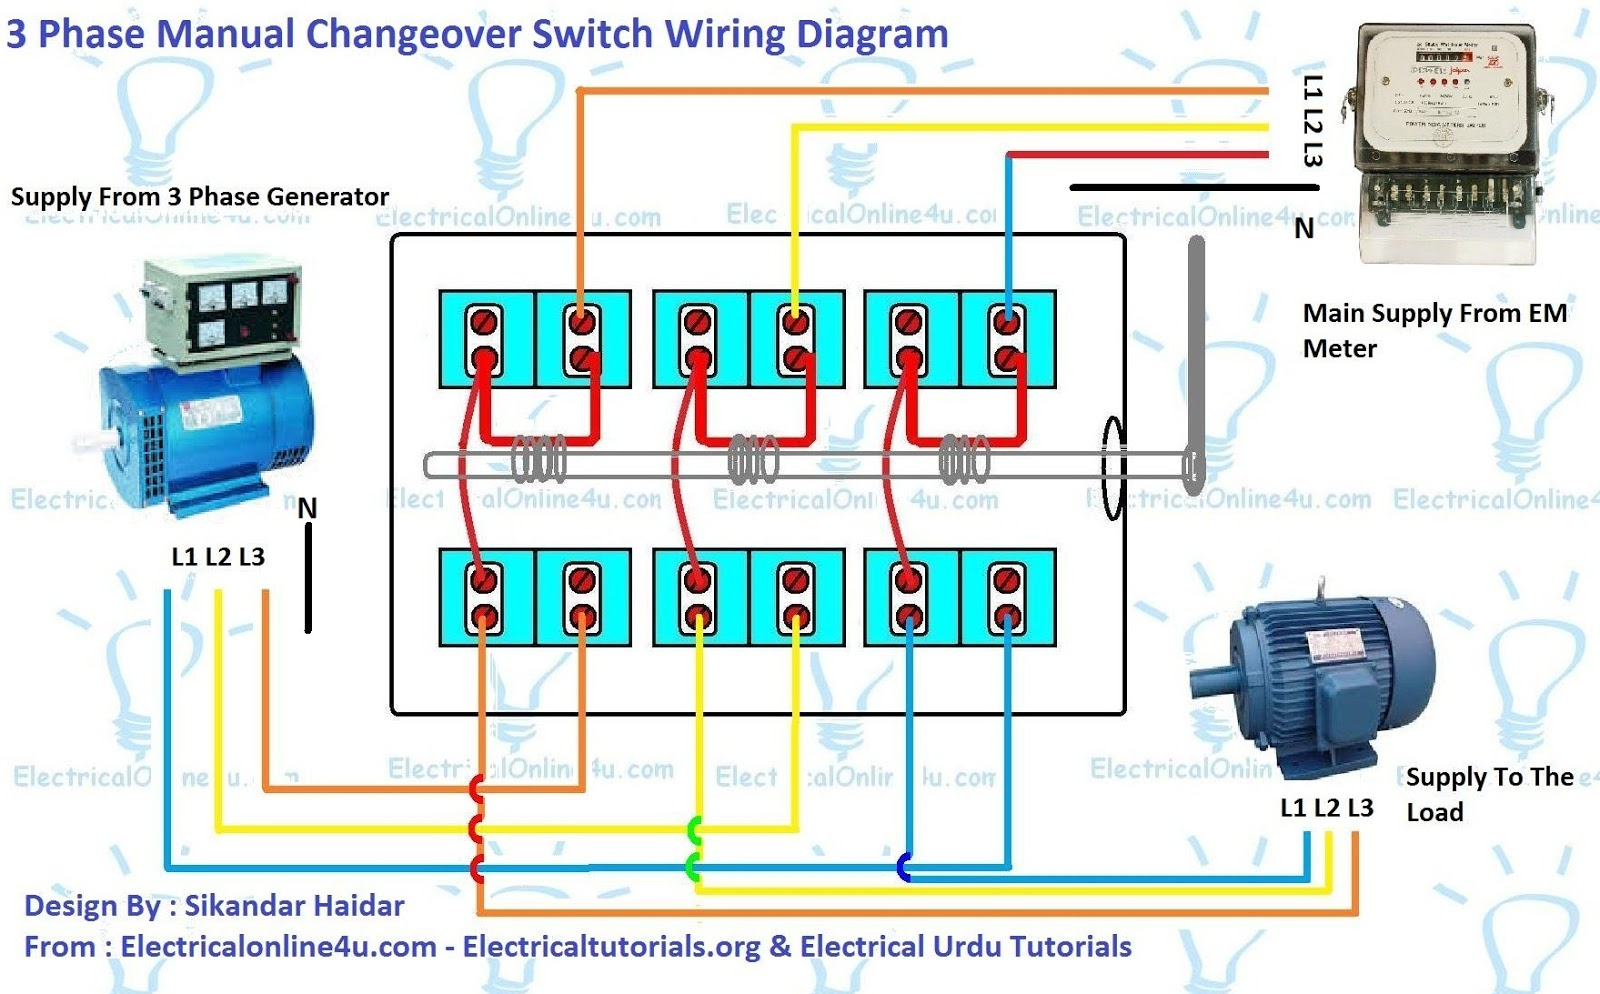 3 Phase Electrical Wiring Diagram - Schematics Wiring Diagrams •